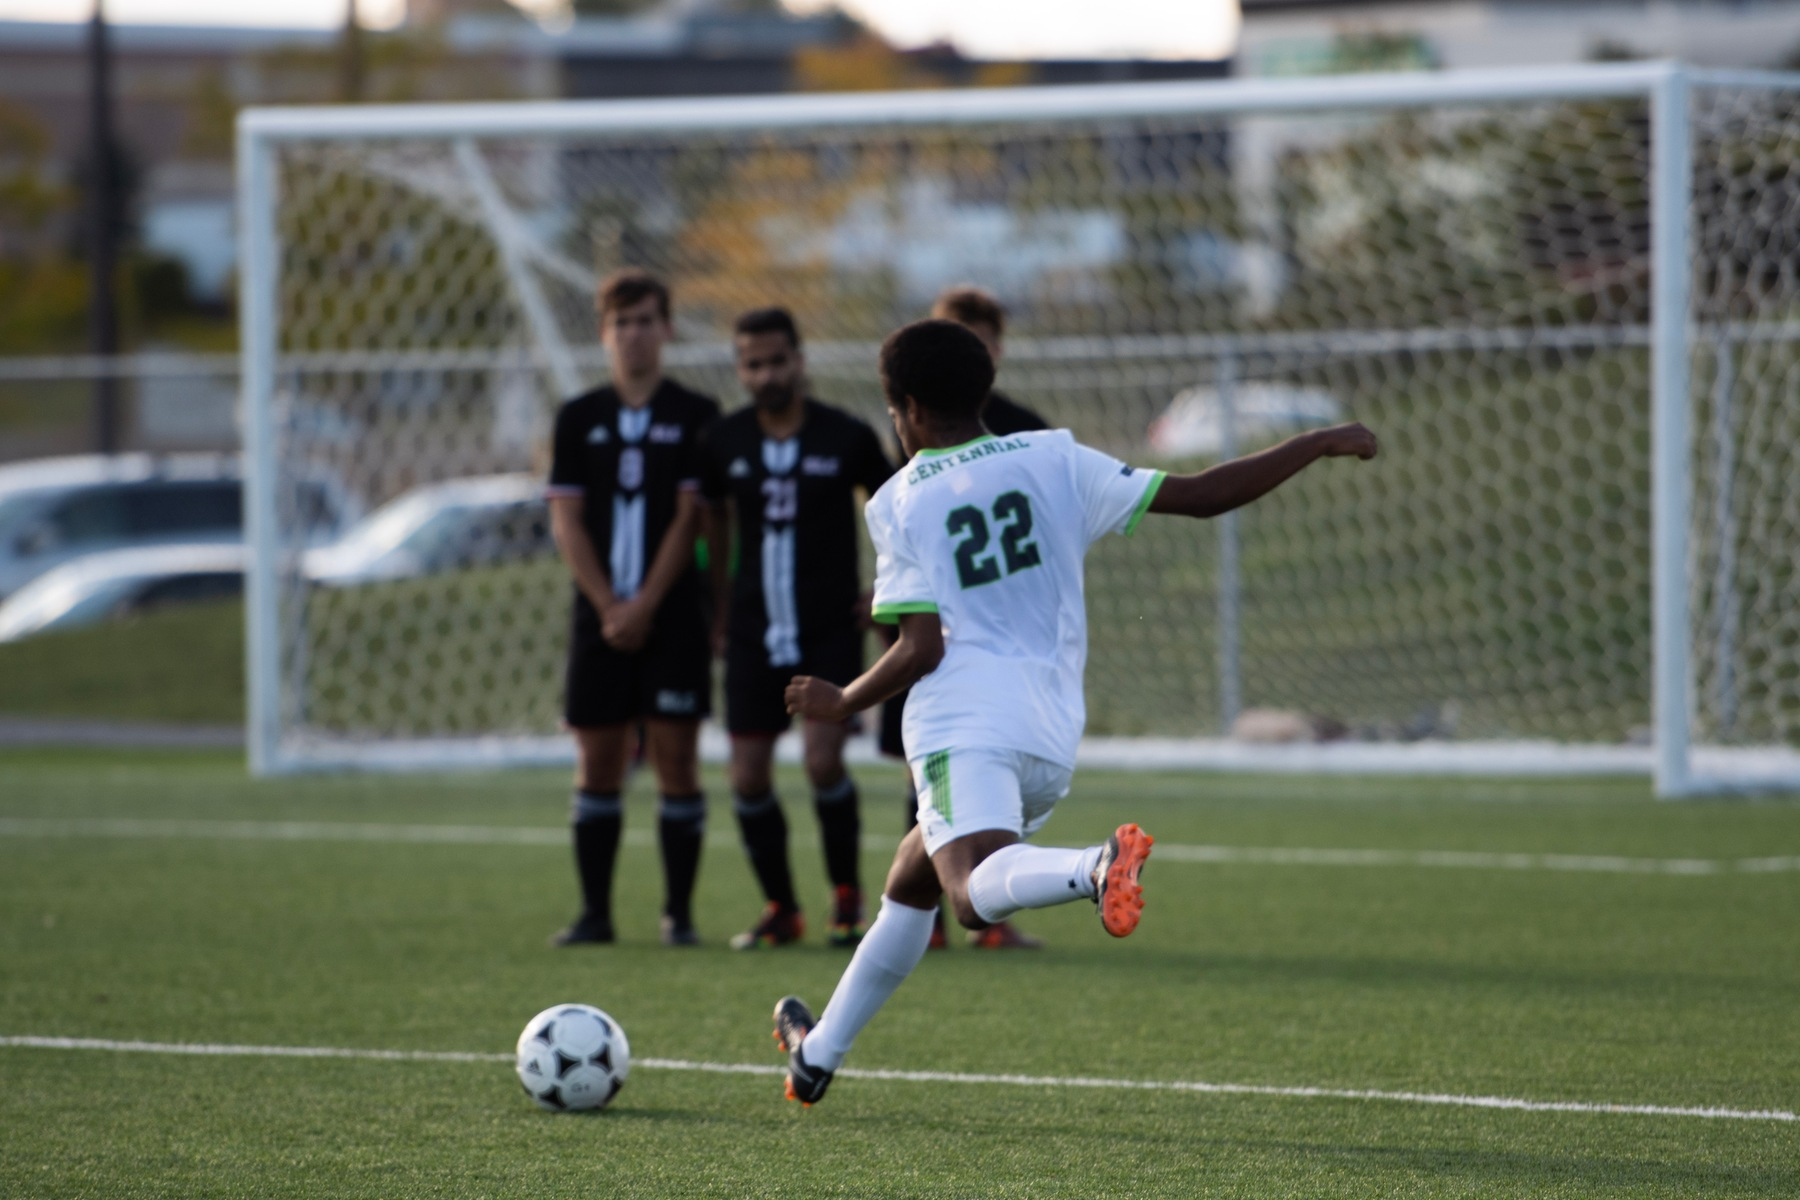 The Colts' Terrell Roberts goes for goal on a free kick attempt during second half action between Centennial and the St. Lawrence Vikings. The home team controlled the pace in the 3-0 victory over the Vikings (Via Dulay/Sports Information Officer)